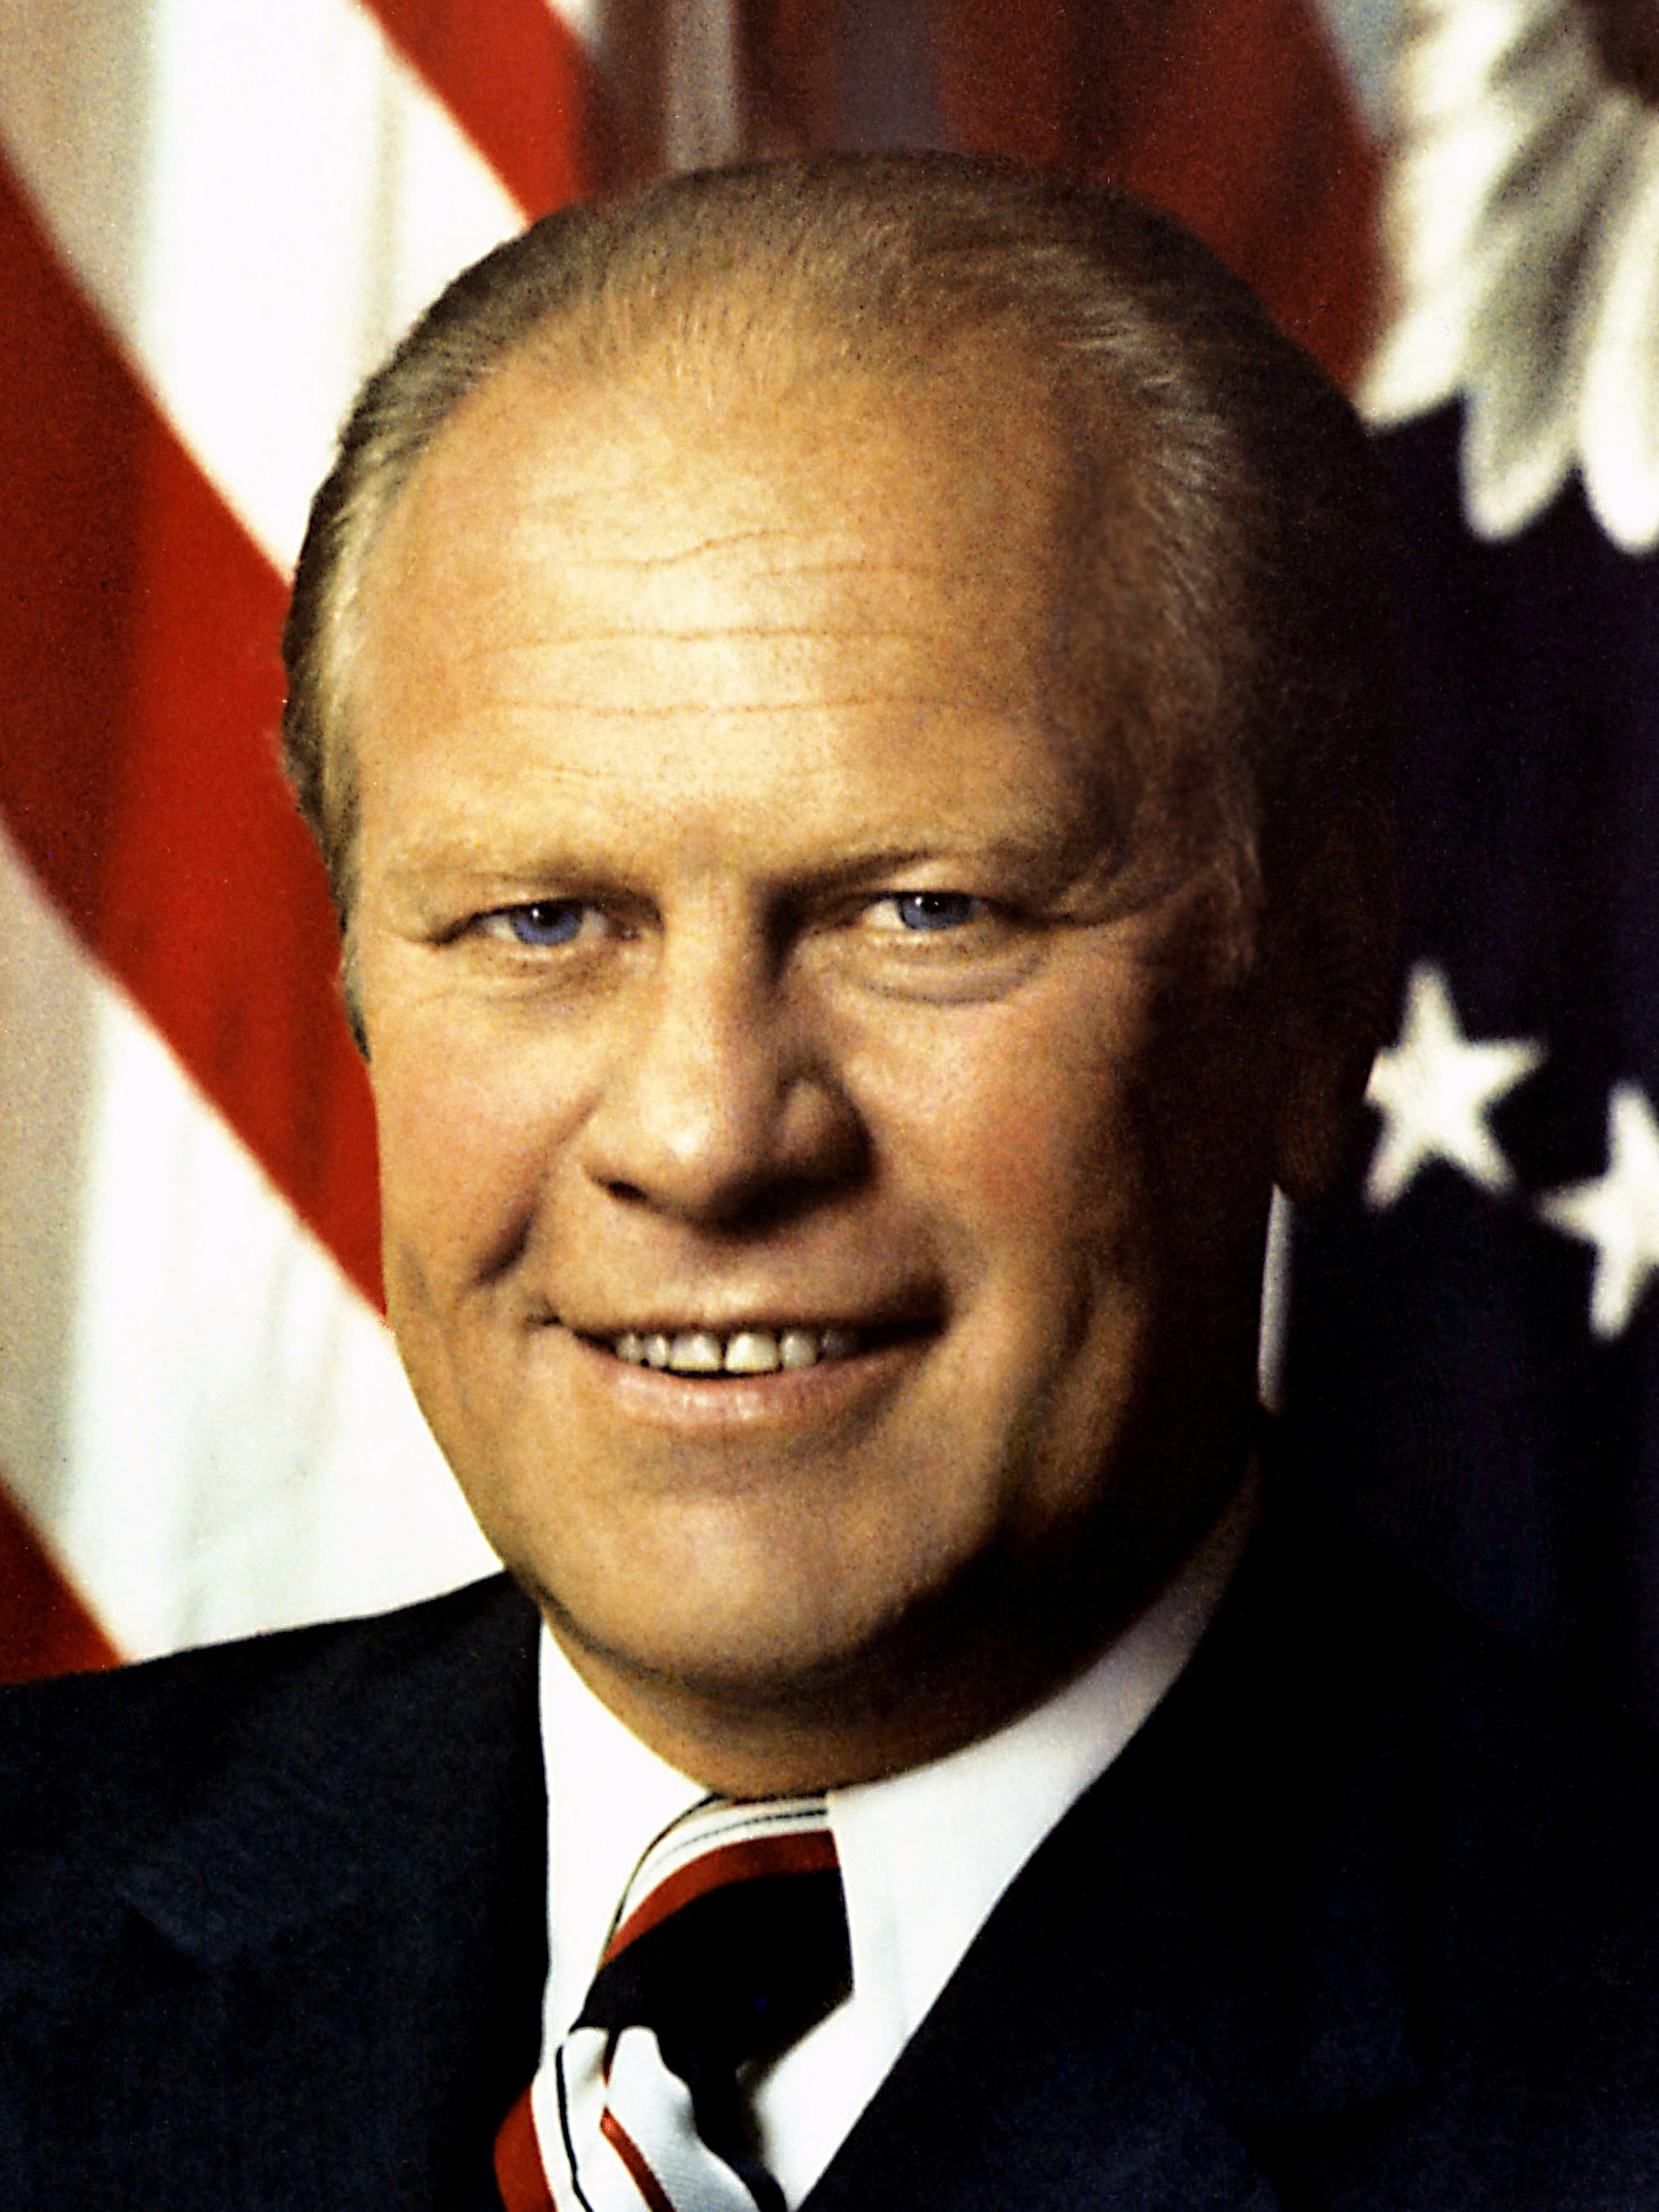 Gerald Ford official Presidential photo